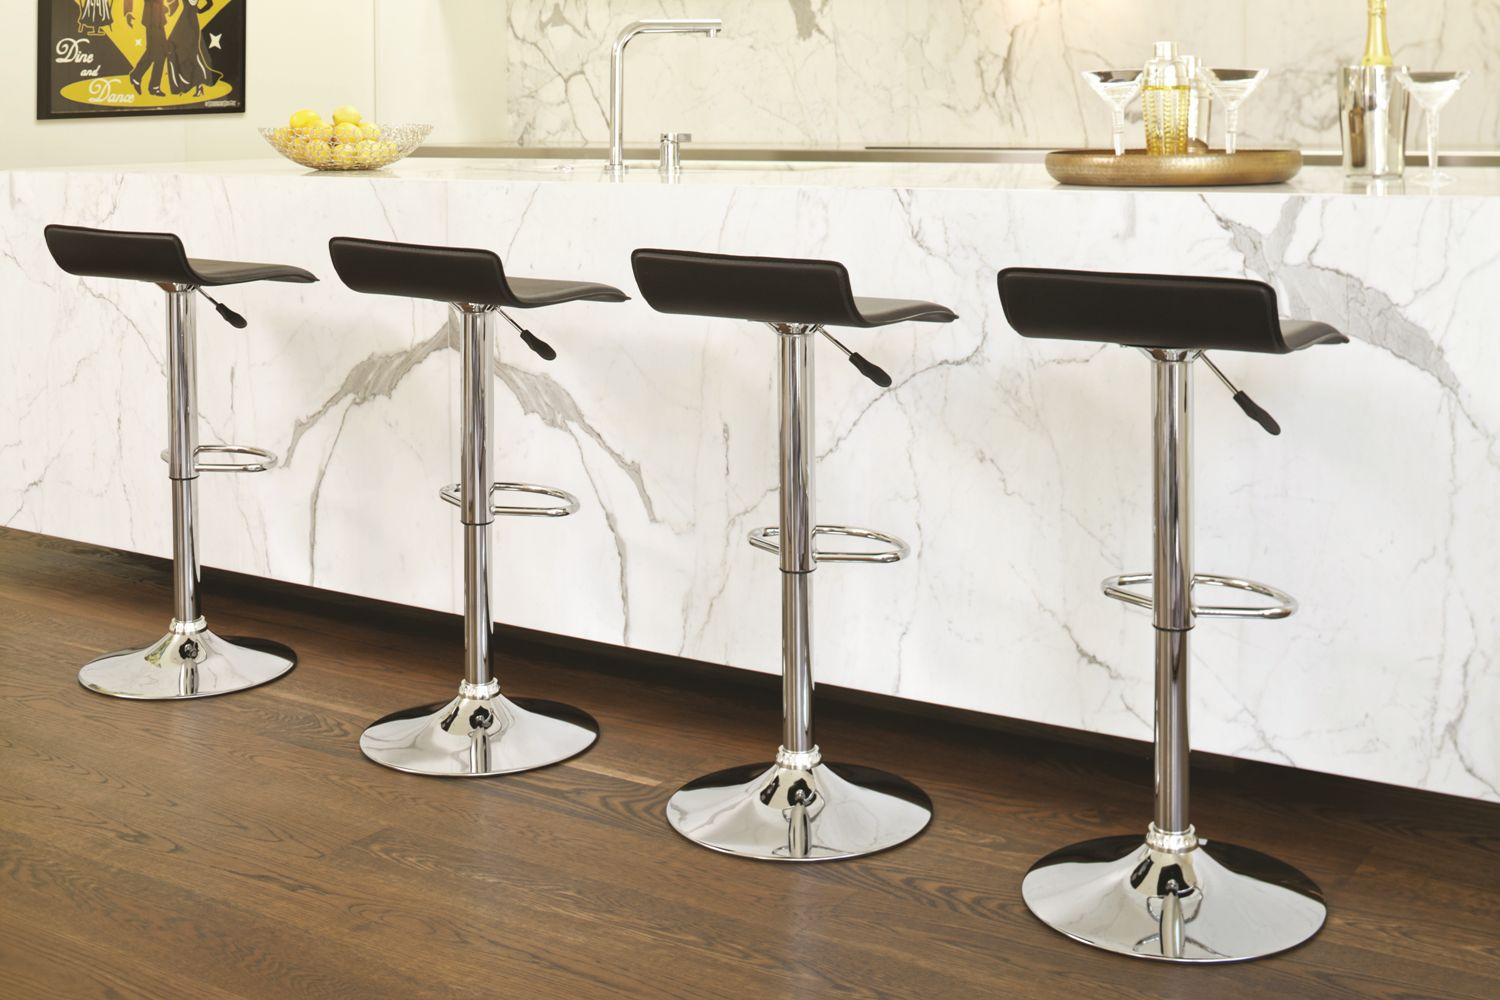 French Bar Stools Nz